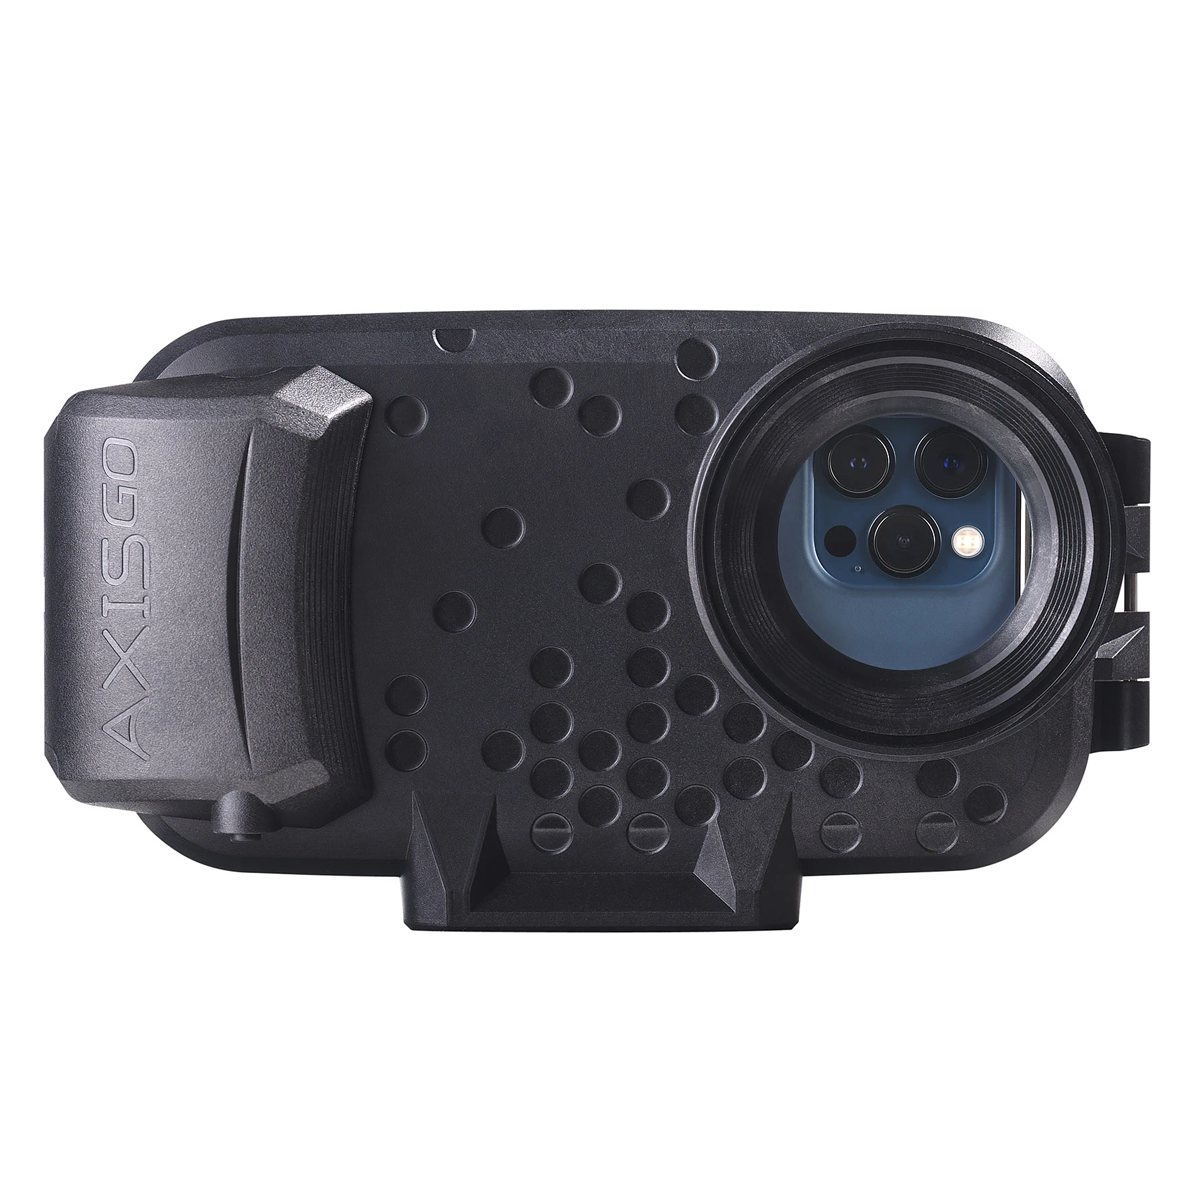 AxisGO AxisGo Water Housing for iPhone 12/12 Pro/12 Pro Max